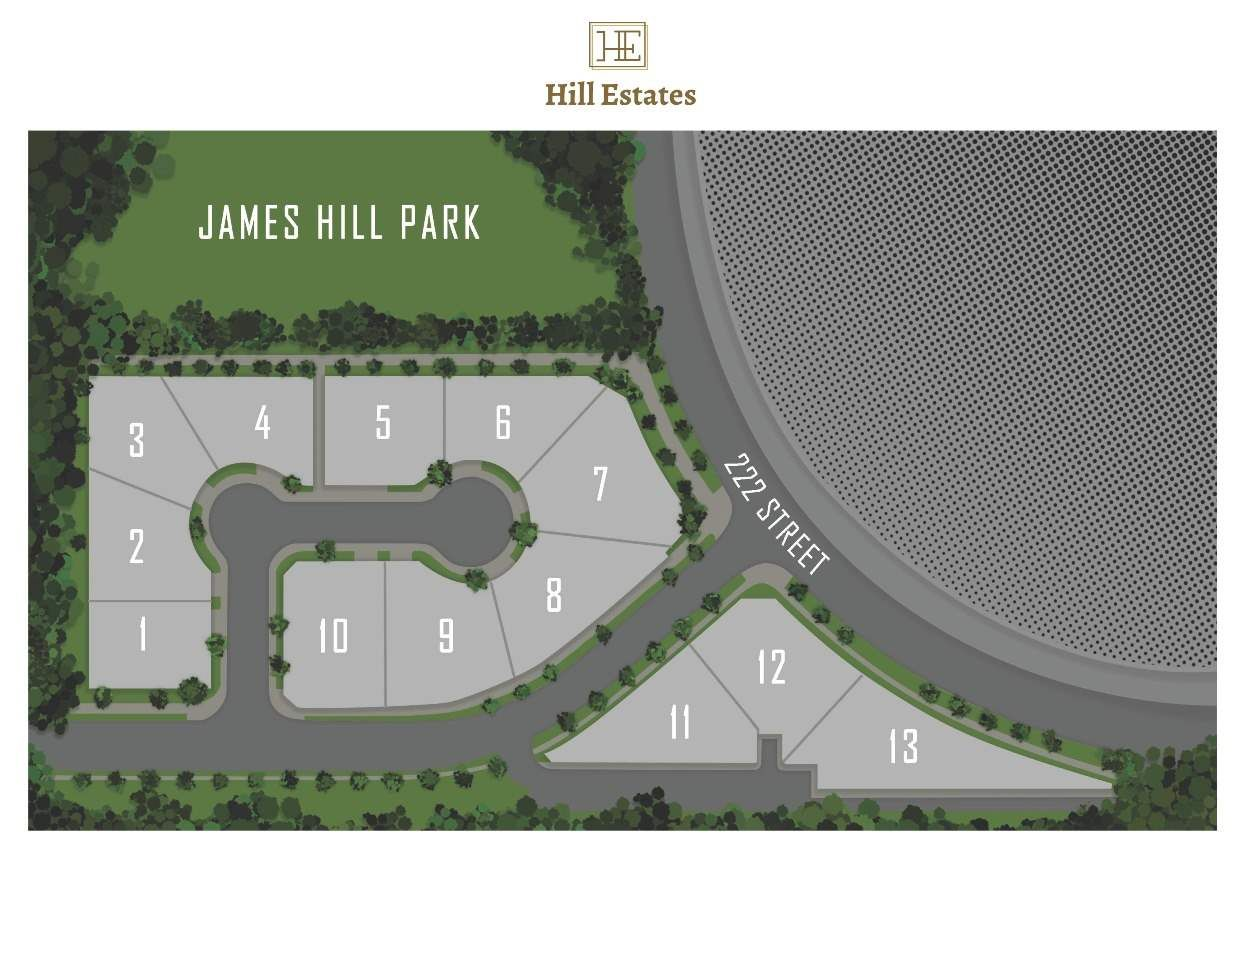 """Main Photo: Lot 9 4467 222 Street in Langley: Murrayville Land for sale in """"Hill Estates"""" : MLS®# R2553805"""